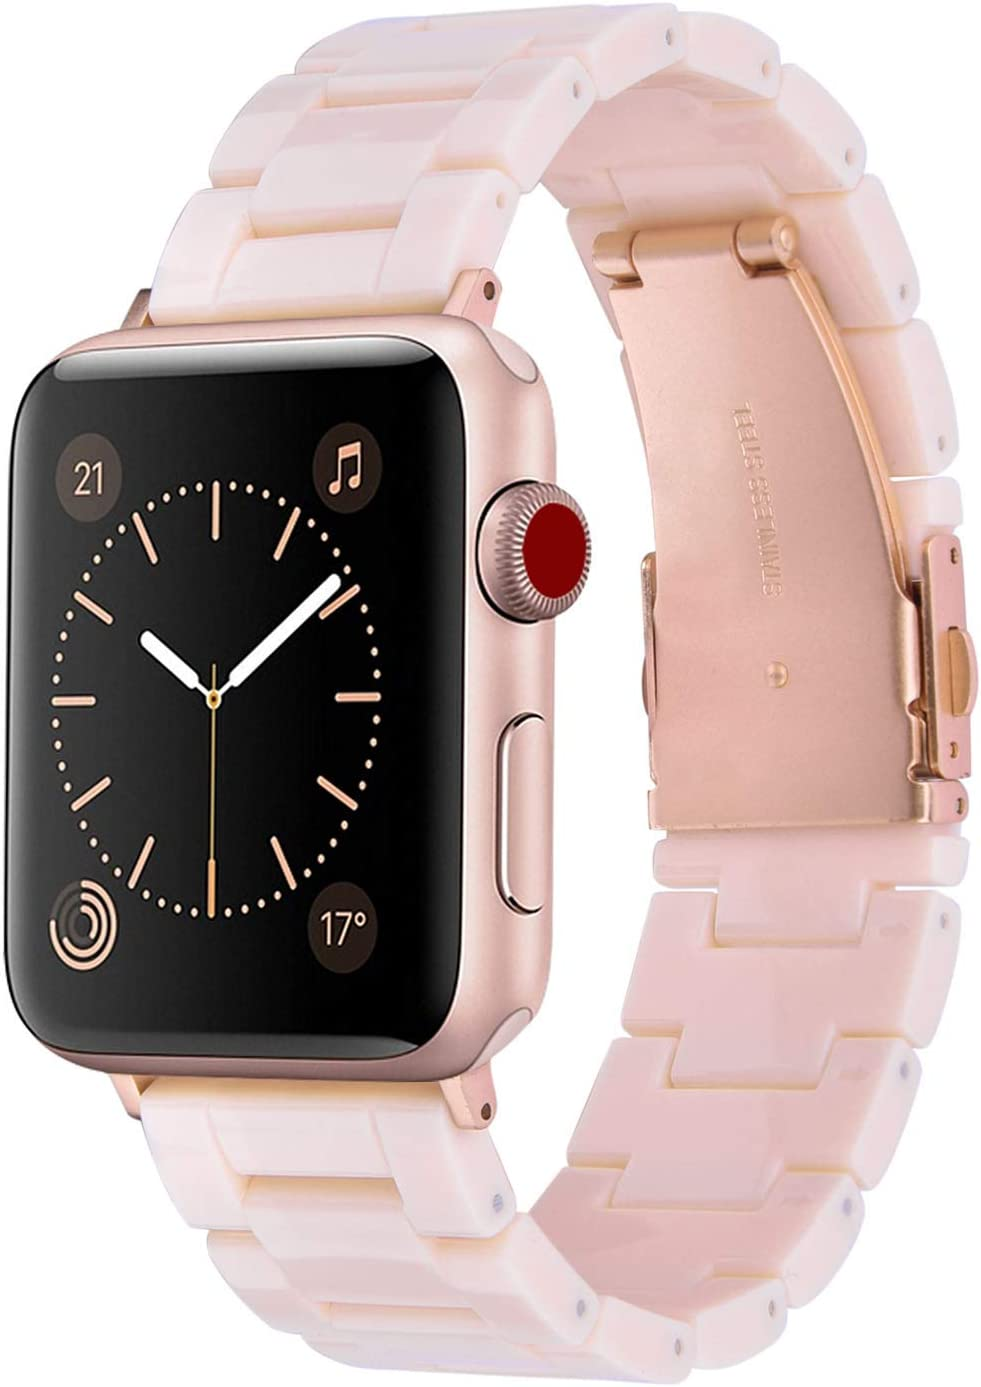 V-MORO Resin Bands Compatible with Apple Watch Band 42mm 44mm Women iWatch Series 4/3/2/1 with Stainless Steel Metal Buckle Replacement Lightweight Wristband - Light Pink